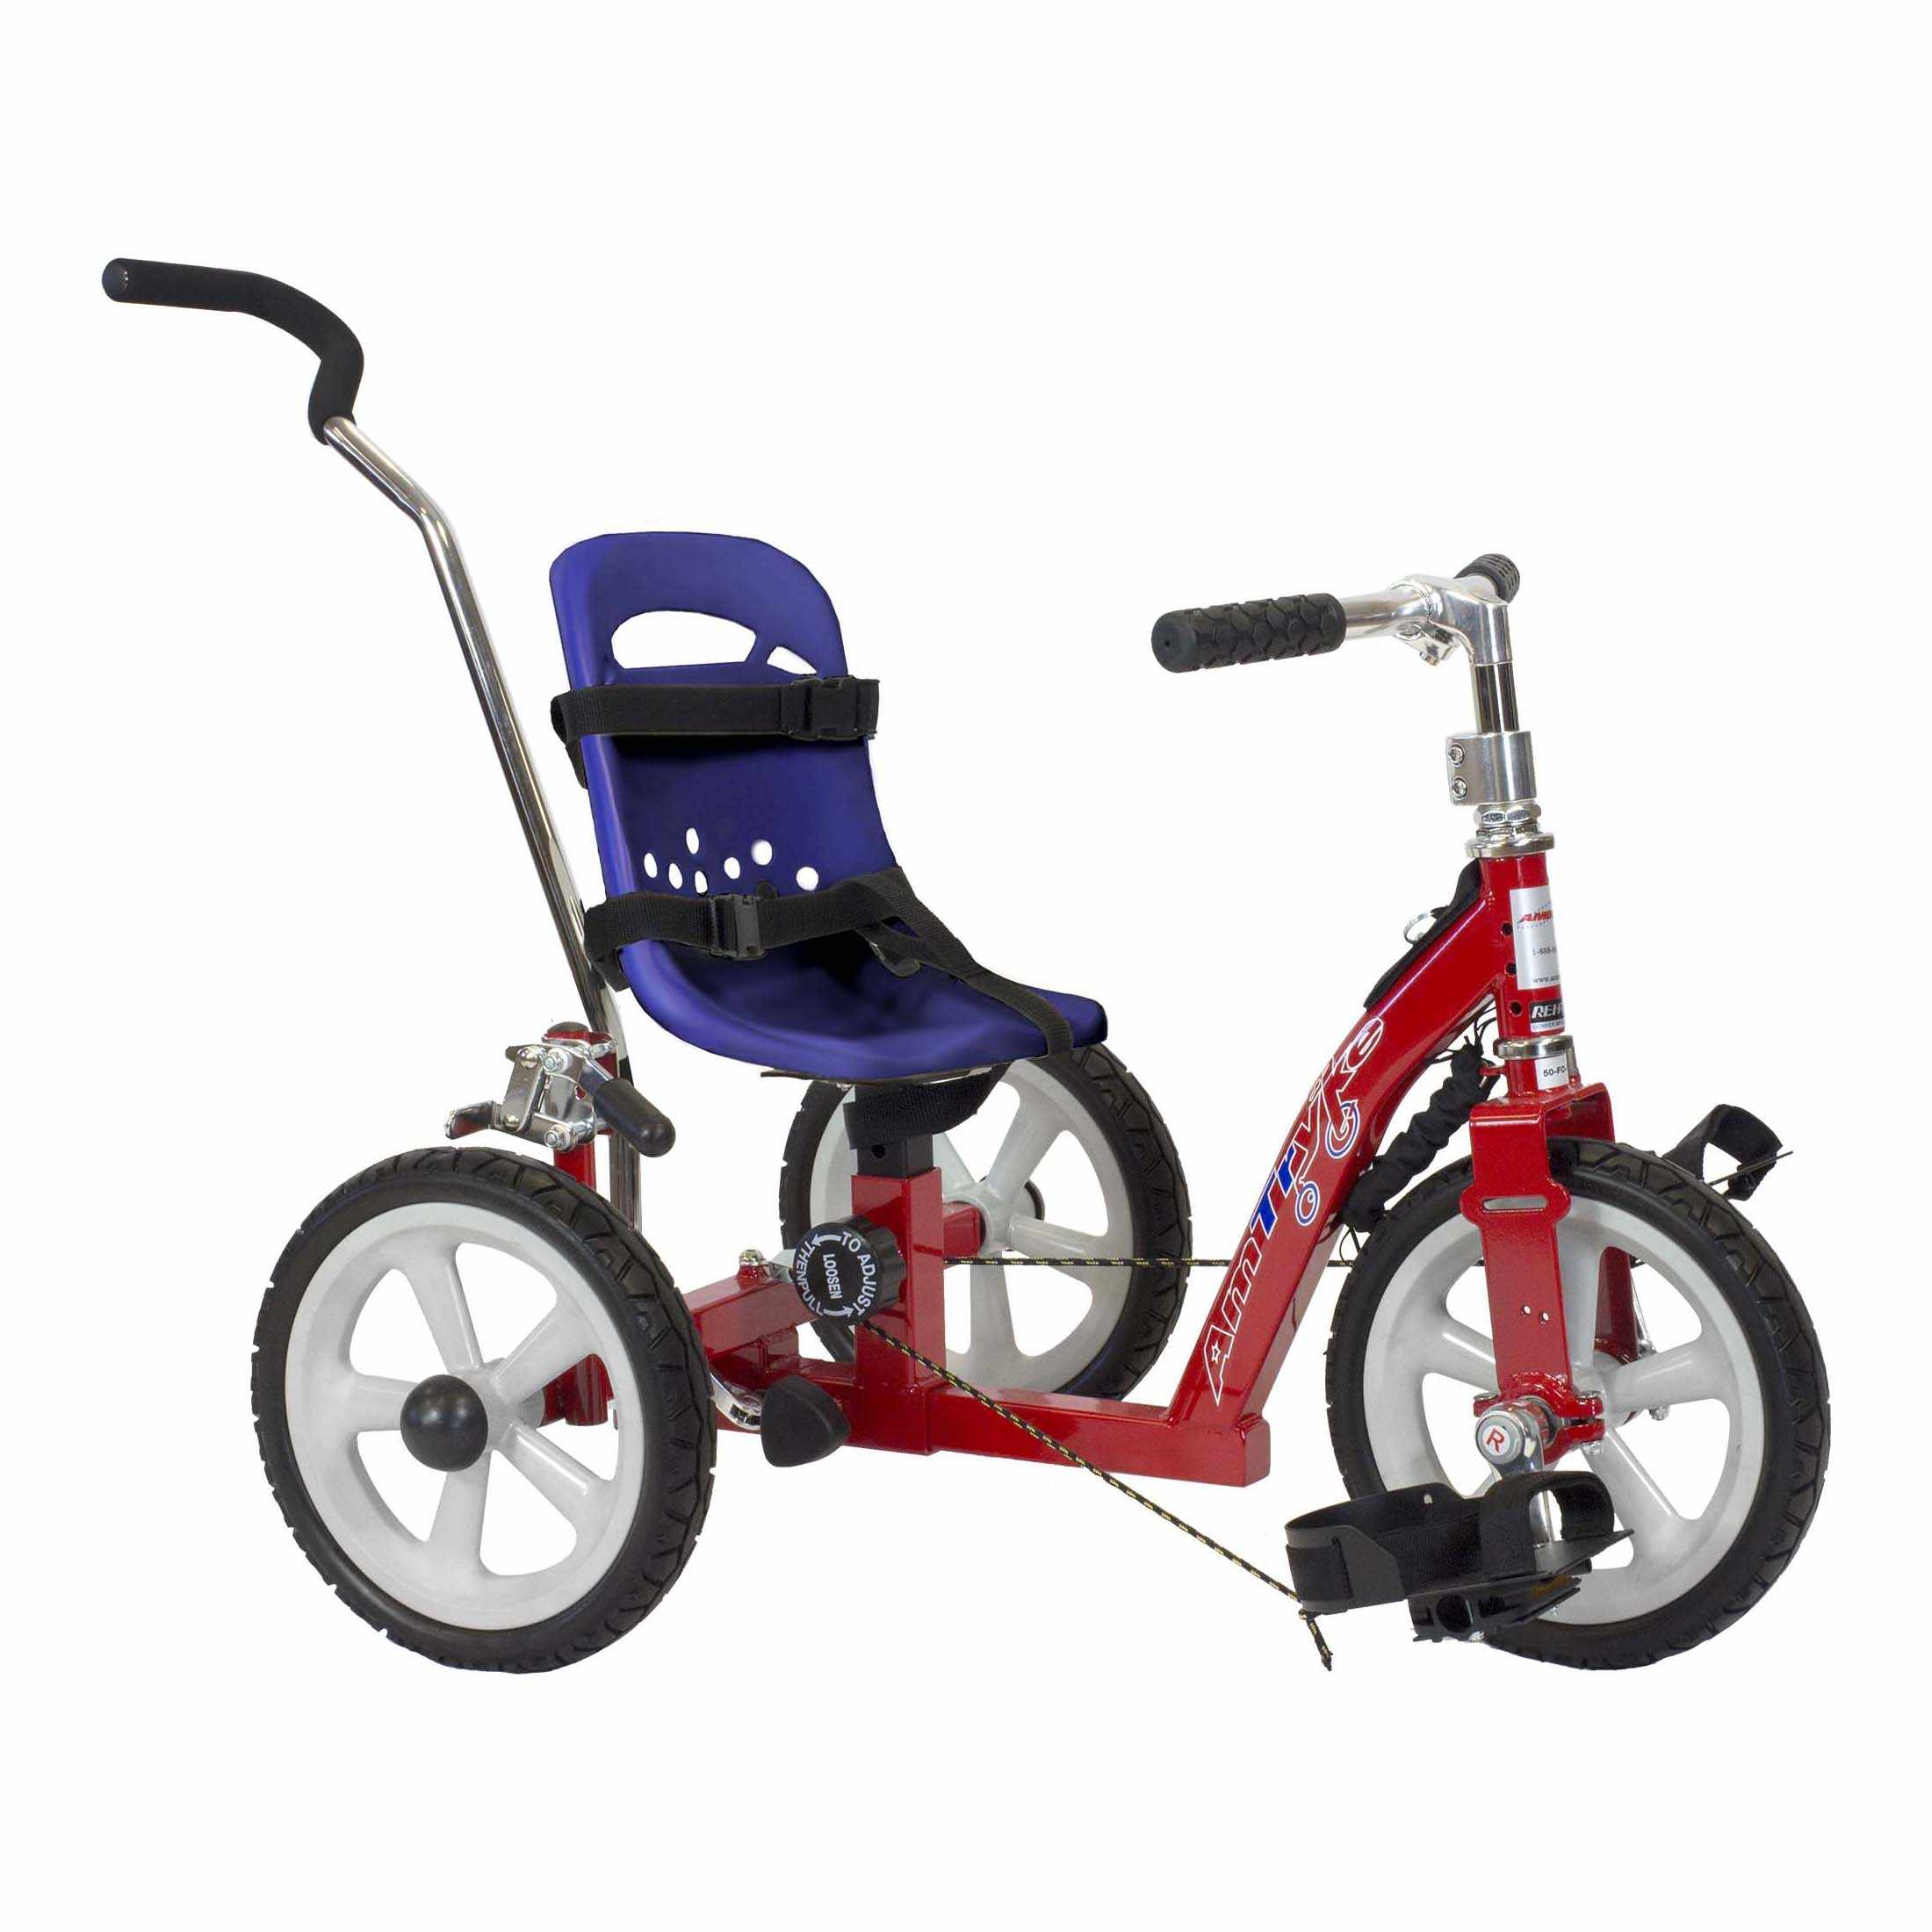 Amtryke 1410 early intervention tricycle with blue bucket seat